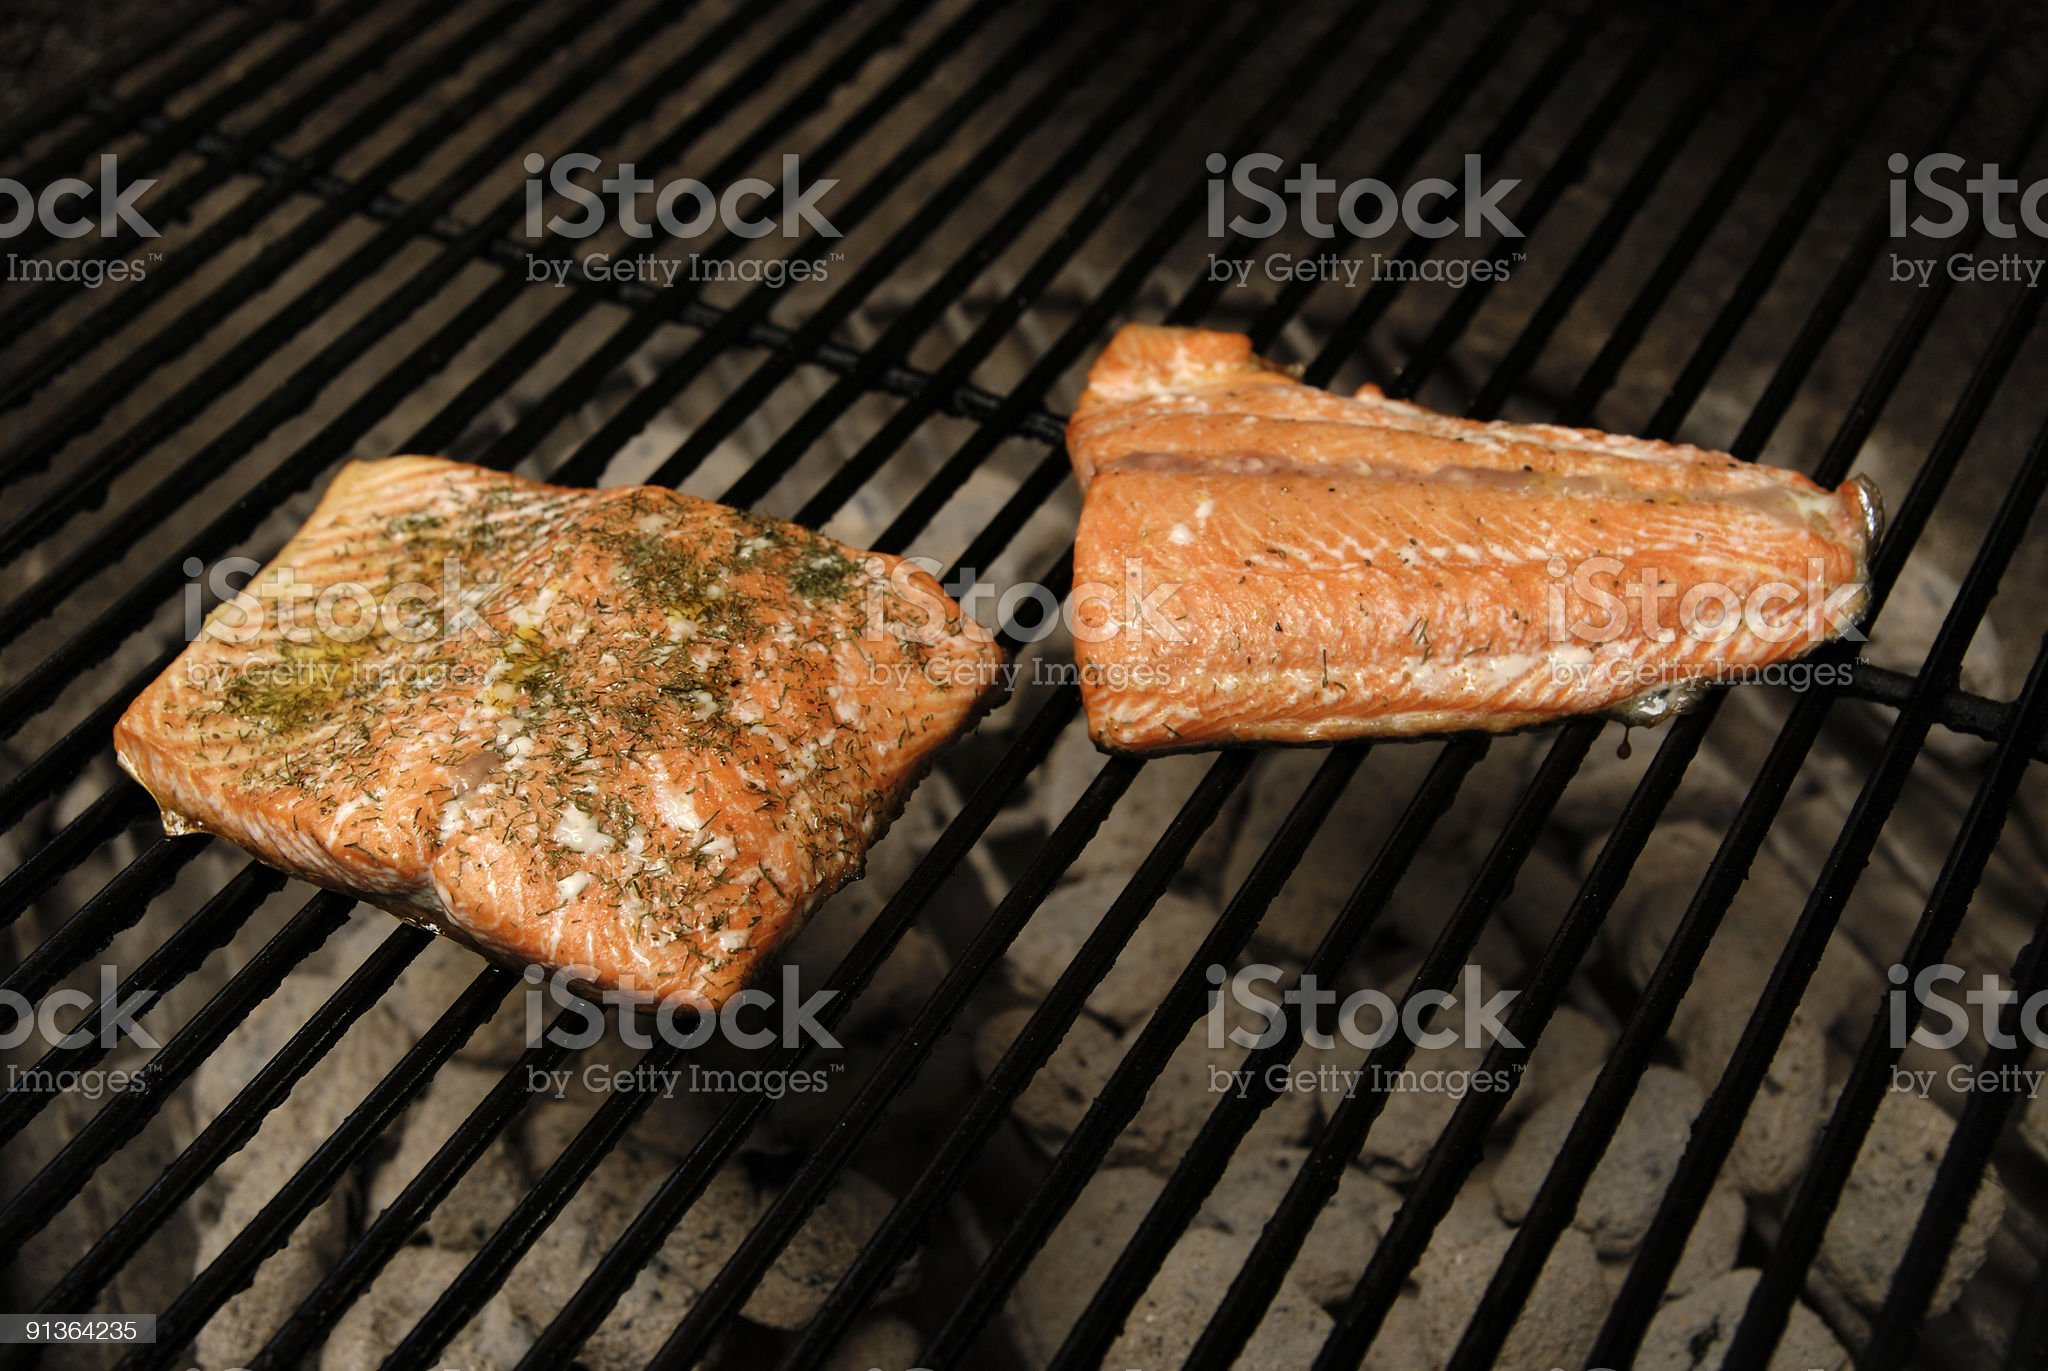 Salmon on the Grill royalty-free stock photo